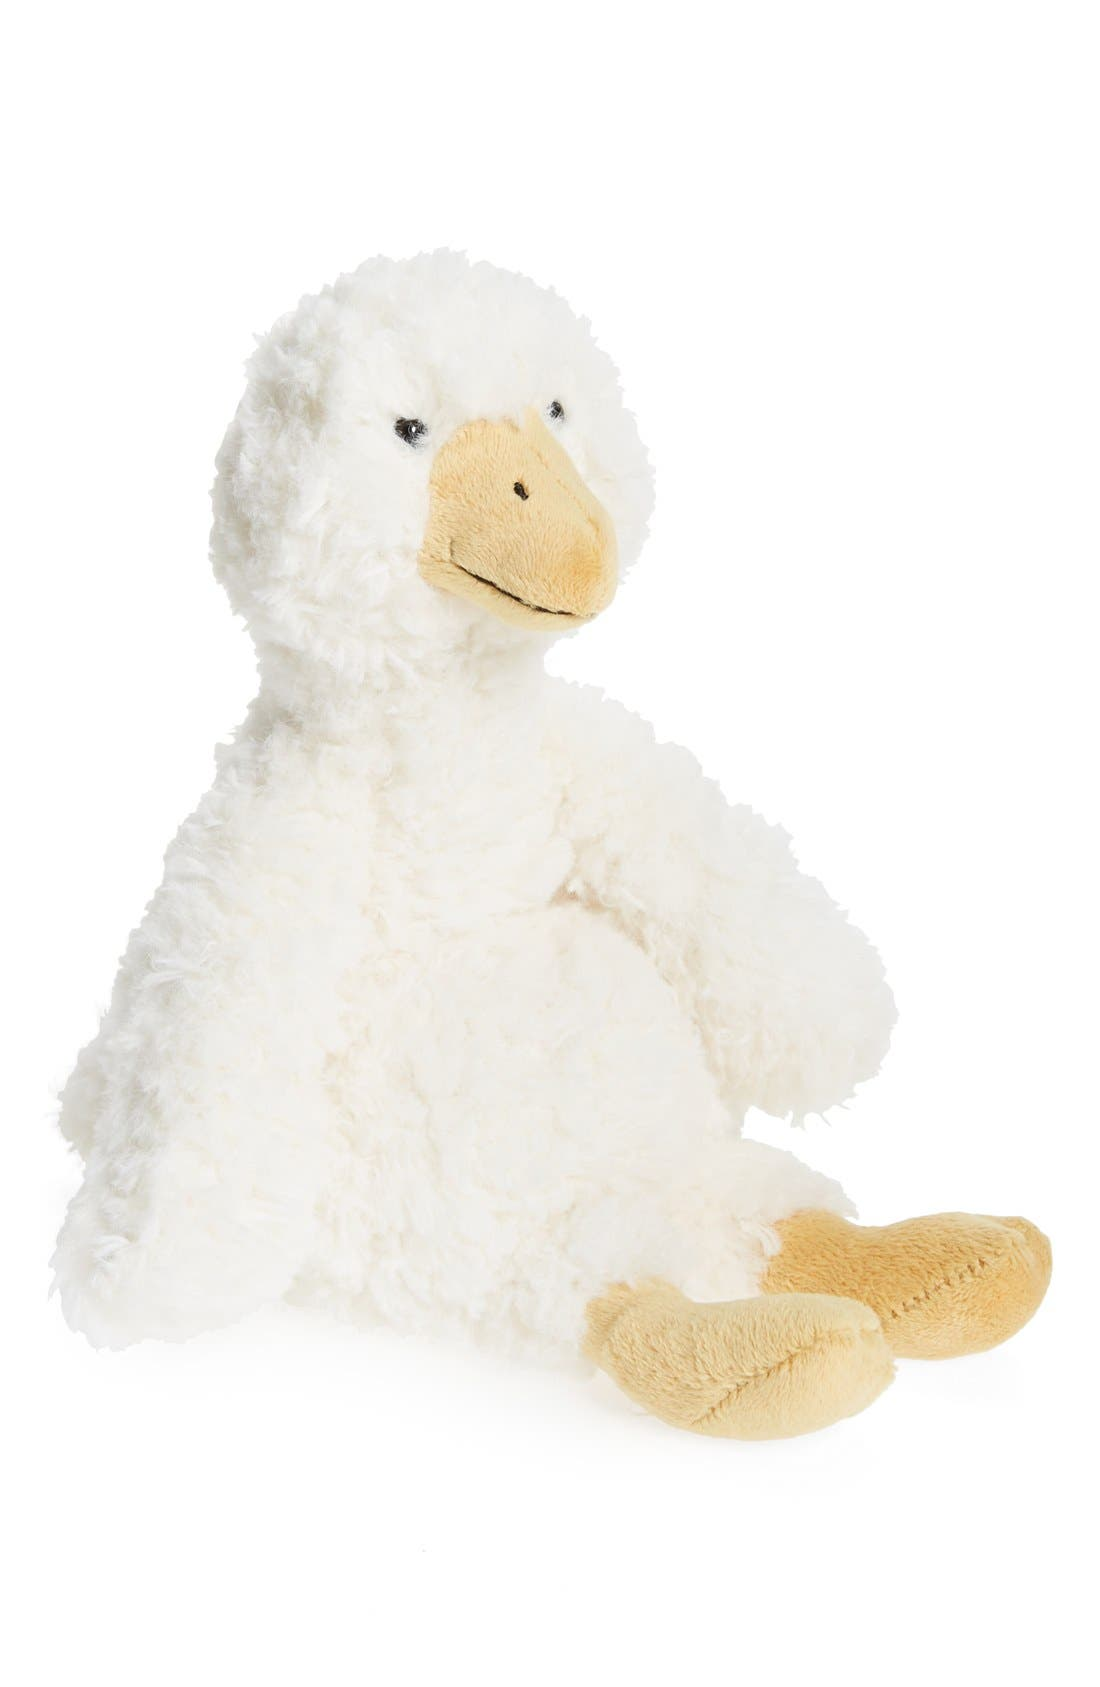 JELLYCAT 'James the Goose' Stuffed Animal